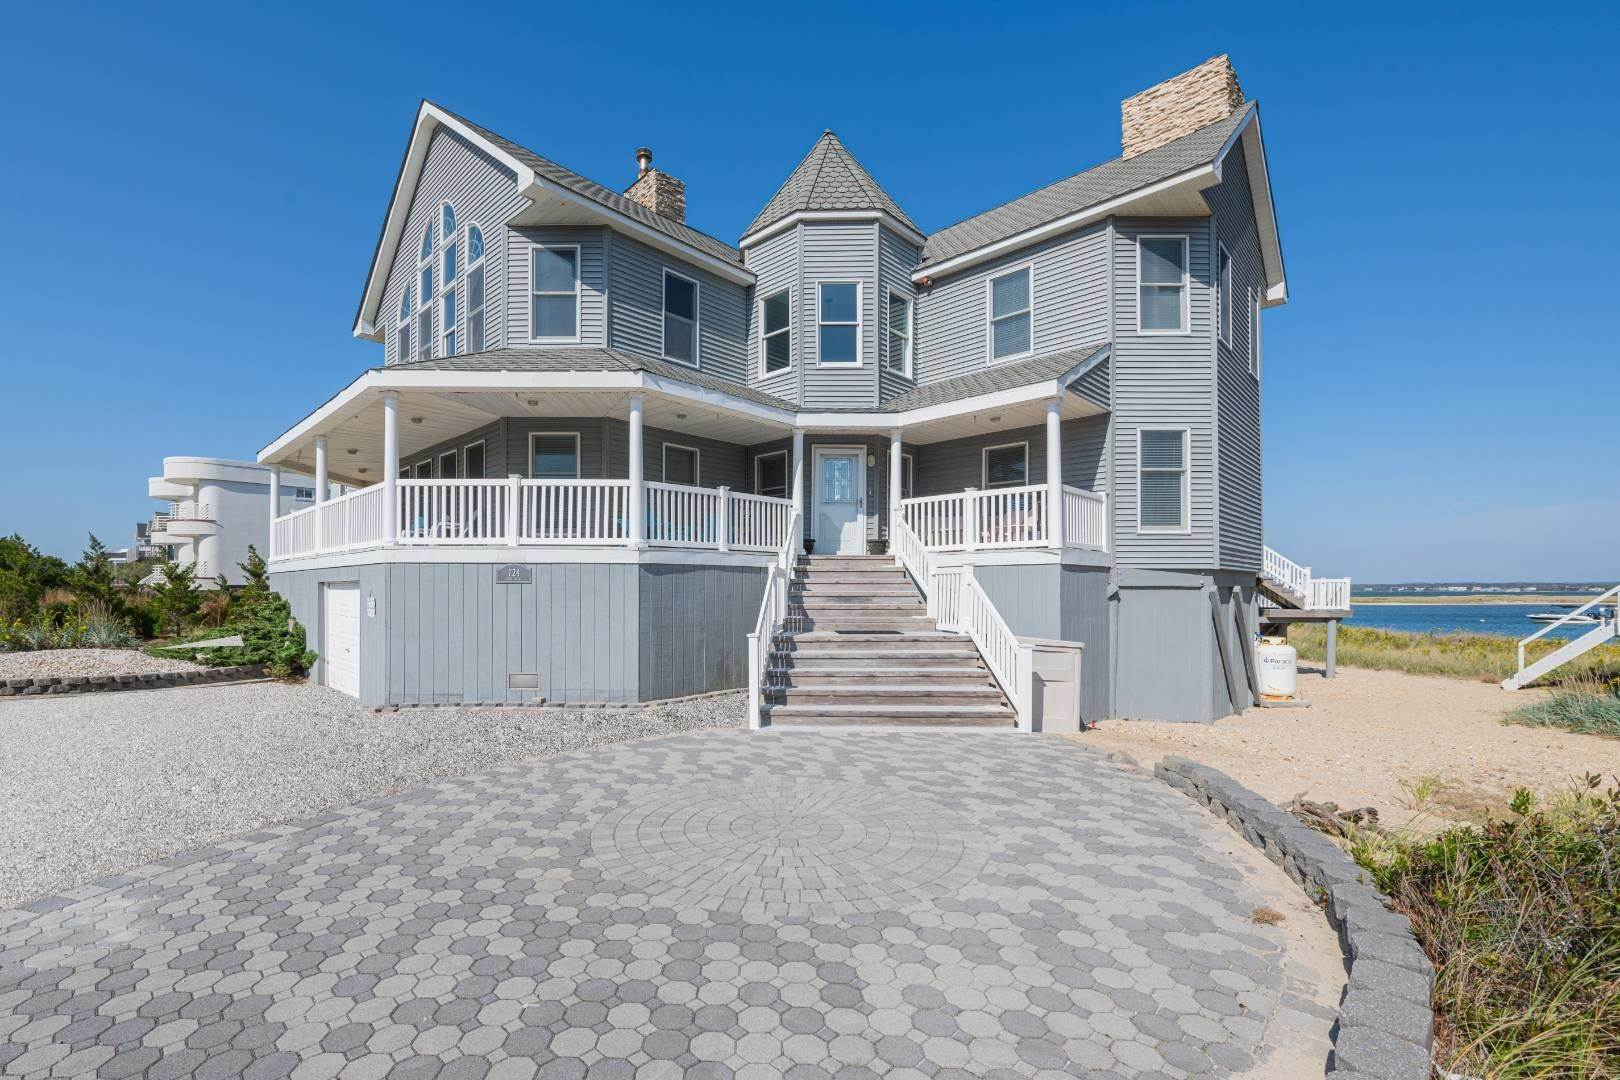 Real Estate at Westhampton Dunes, NY 11978